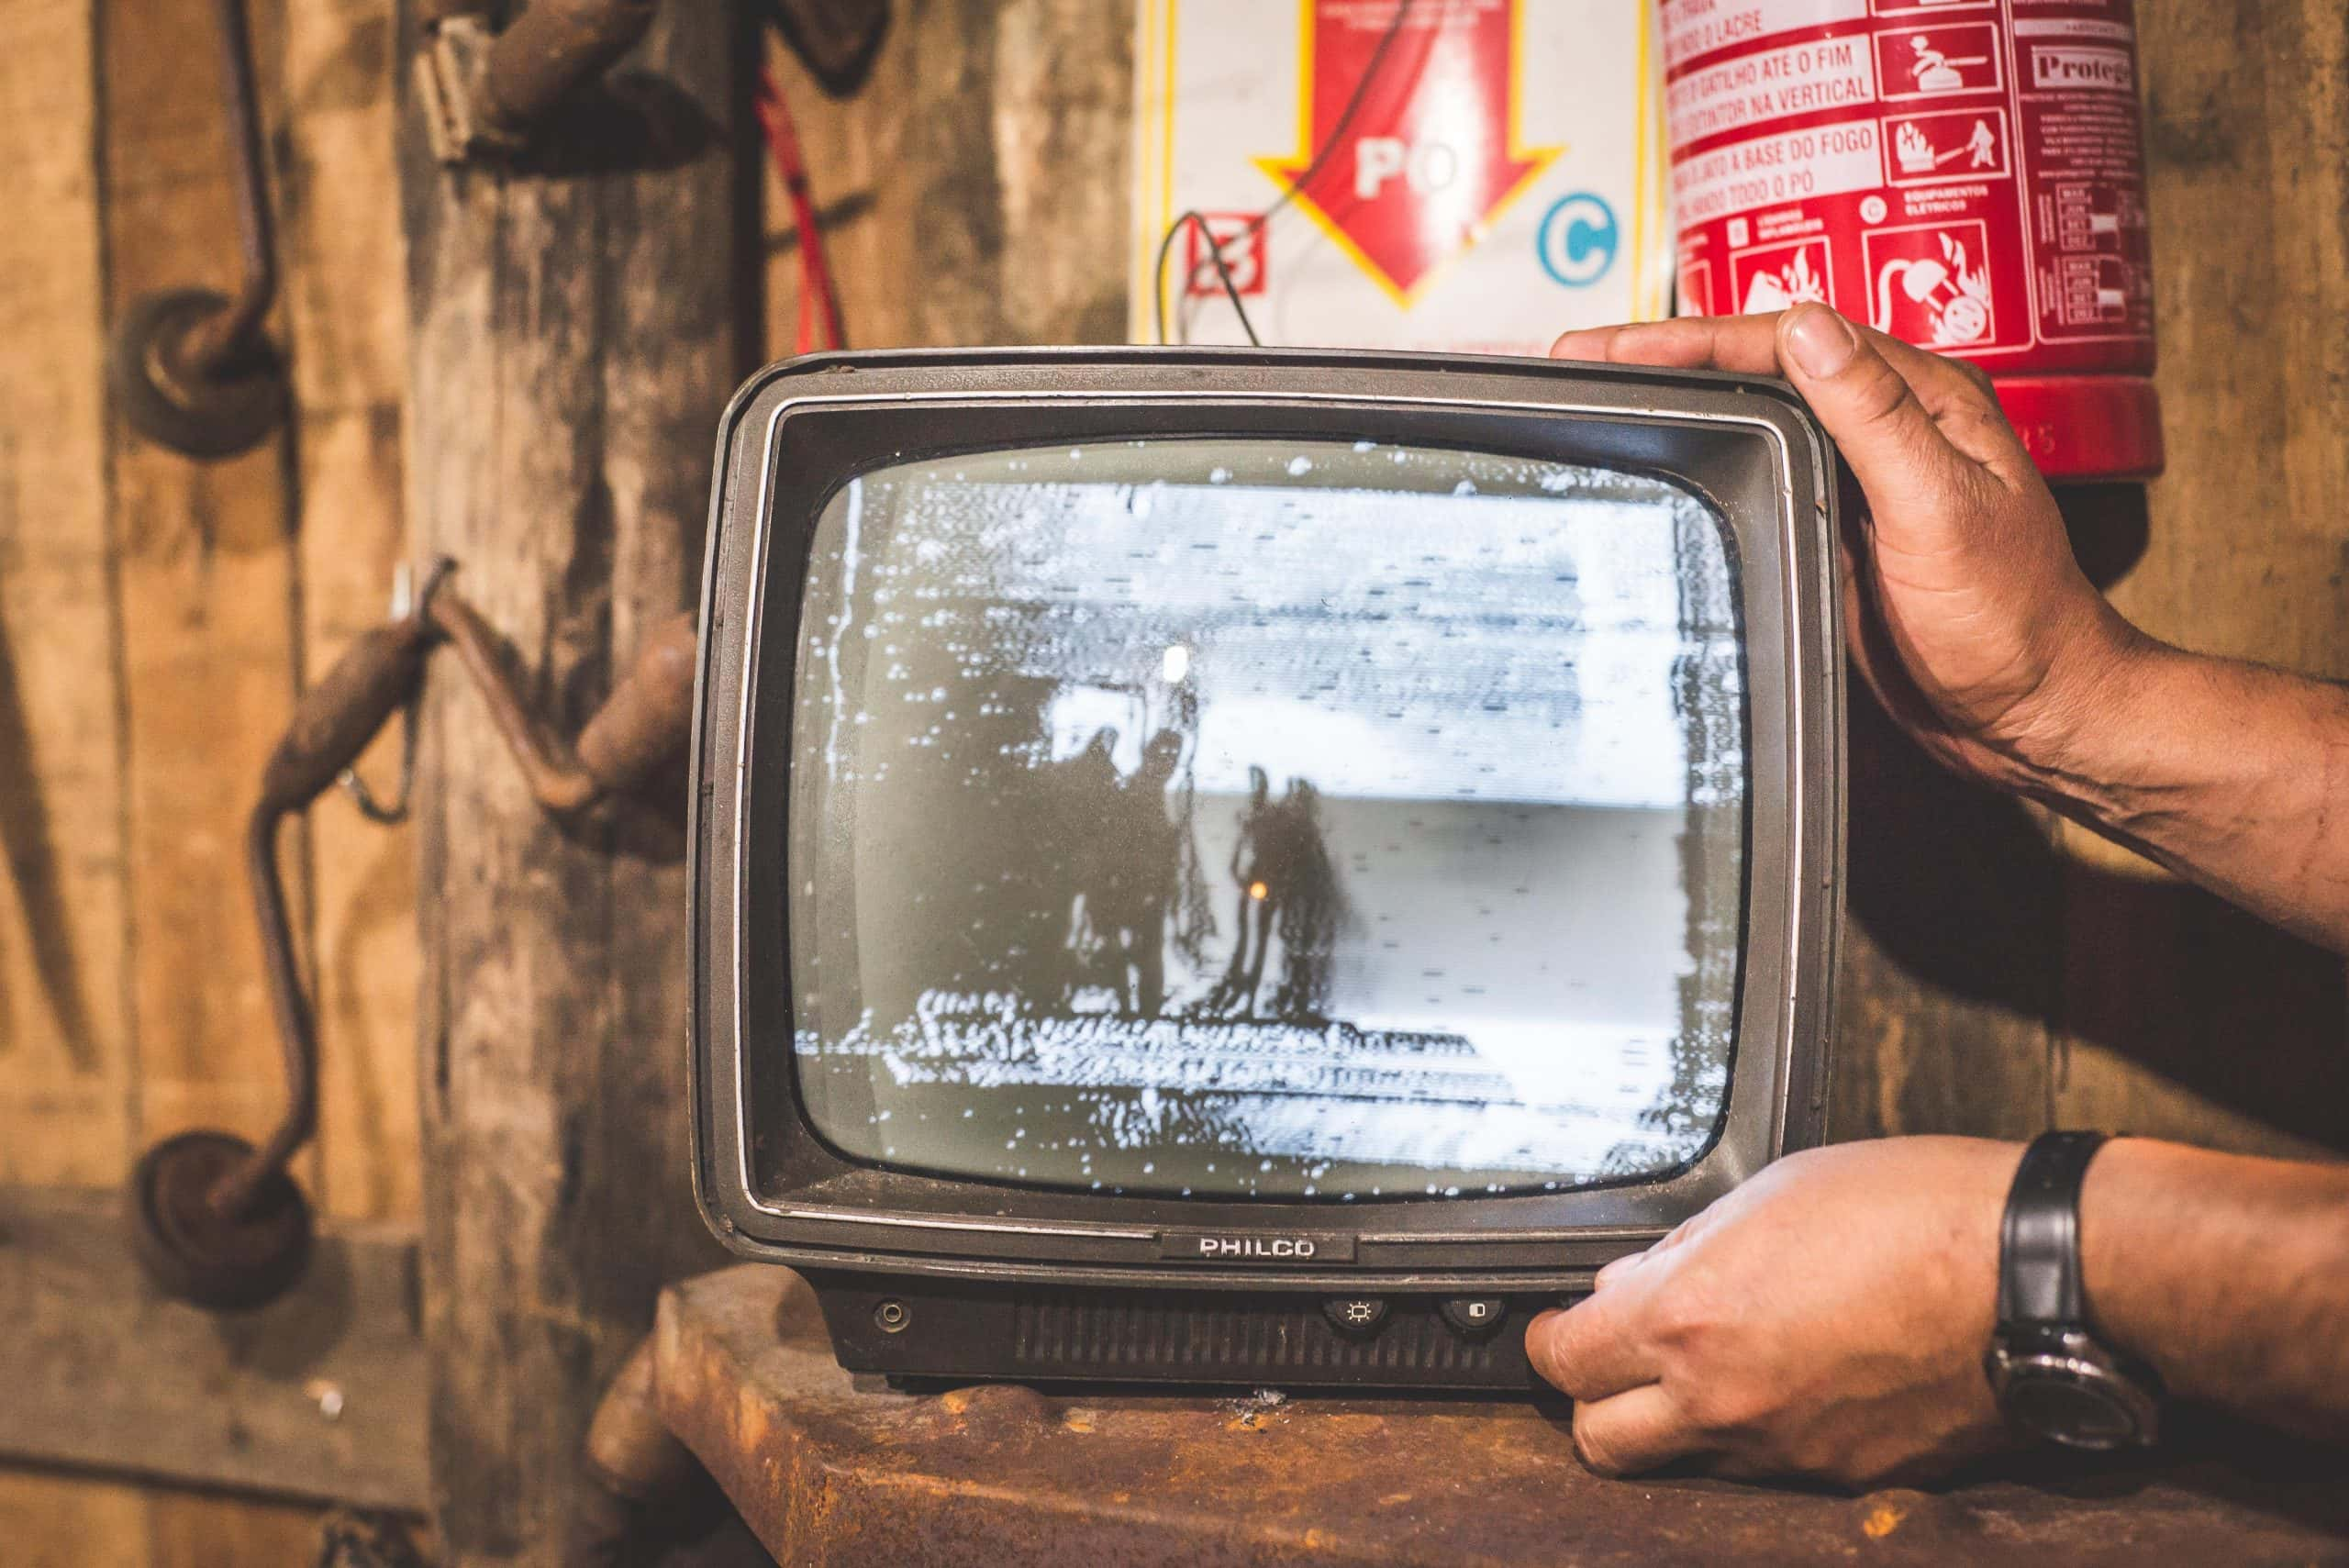 How to Create IGTV Videos - An image of an old TV set